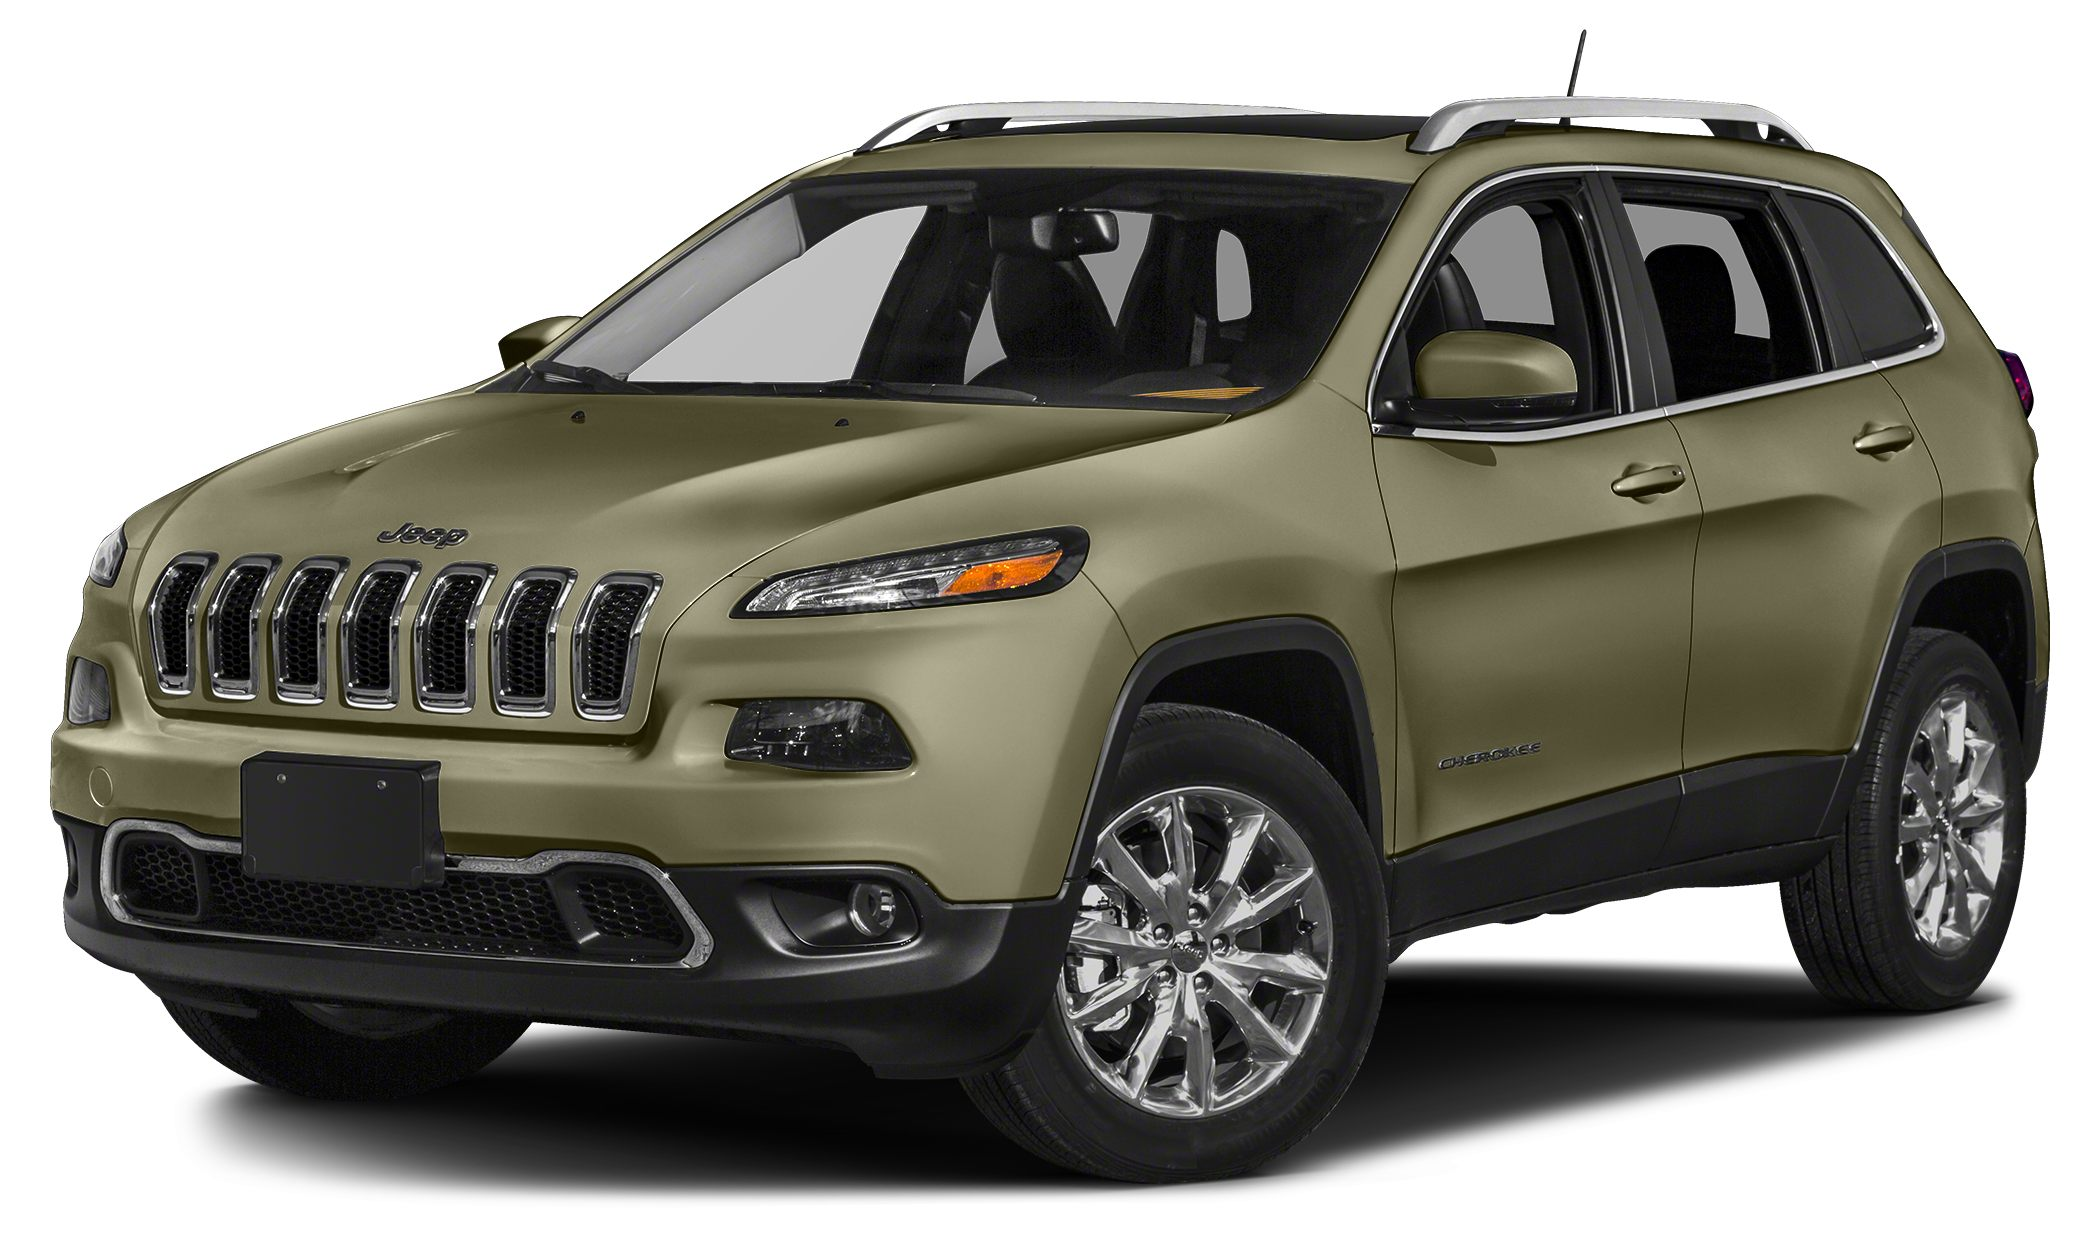 2014 Jeep Cherokee Limited Excellent Condition Jeep Certified CARFAX 1-Owner 200 below NADA Re